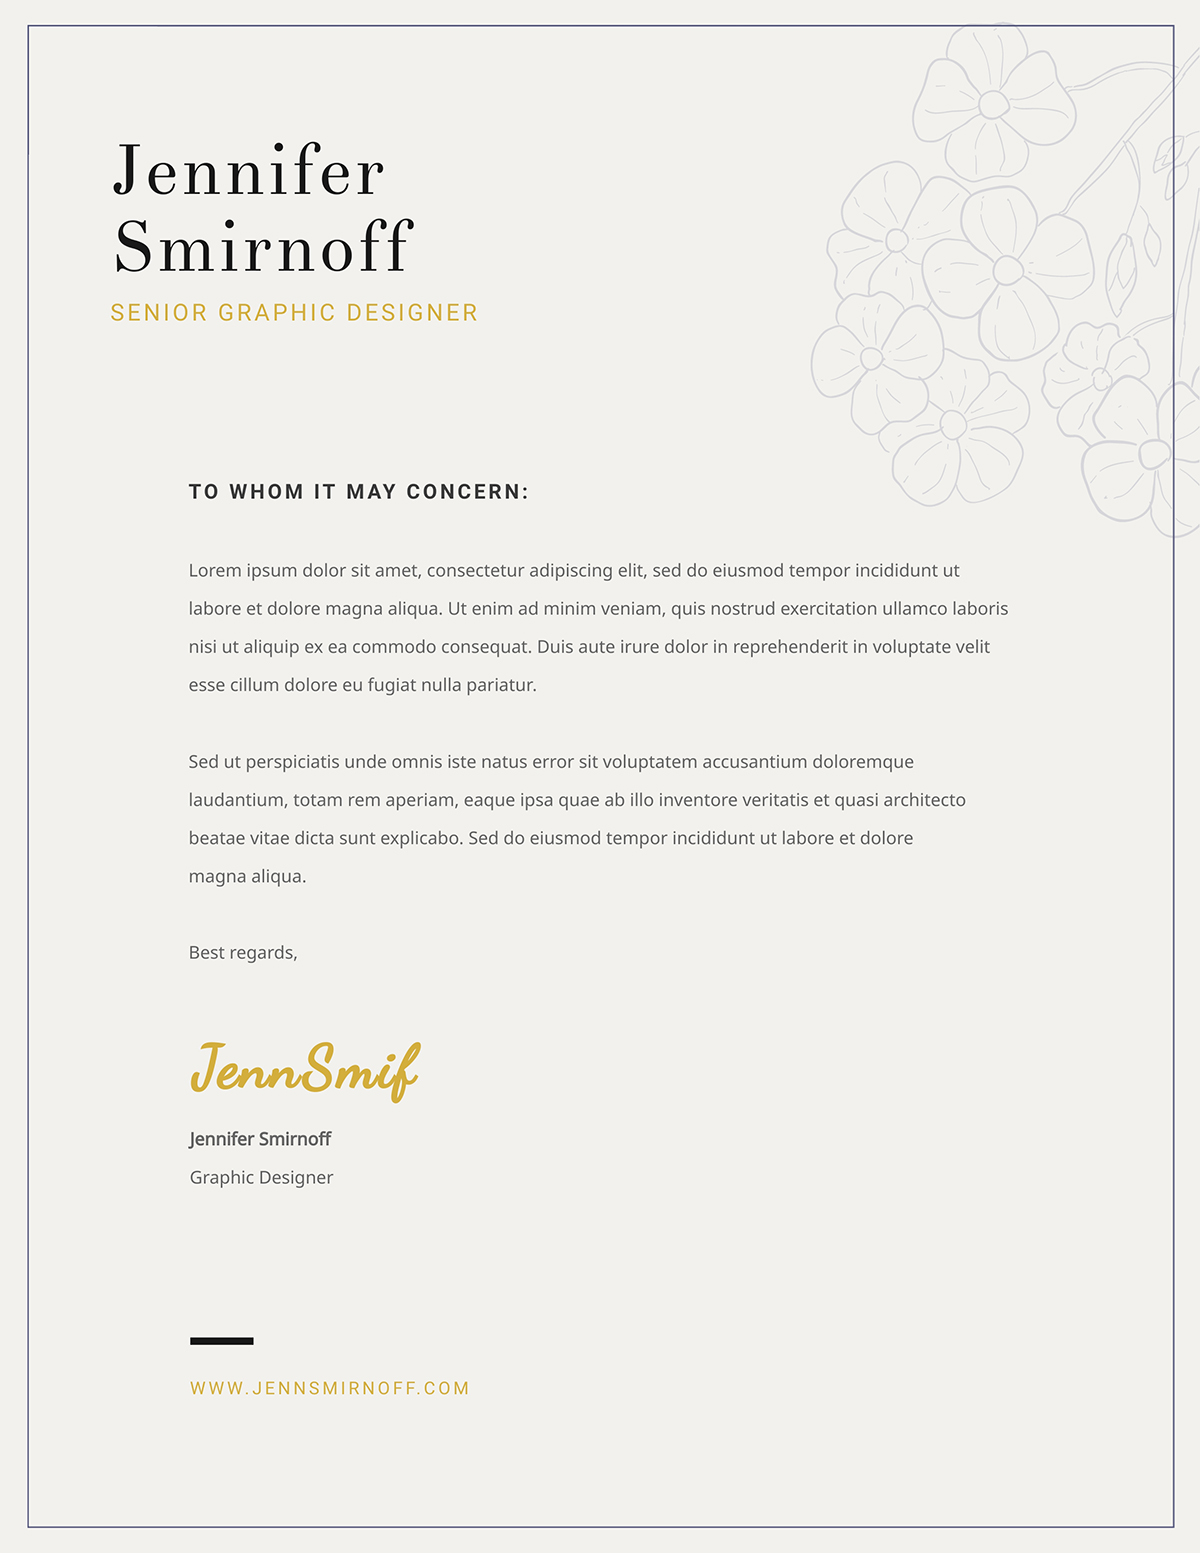 A letterhead template available in Visme.